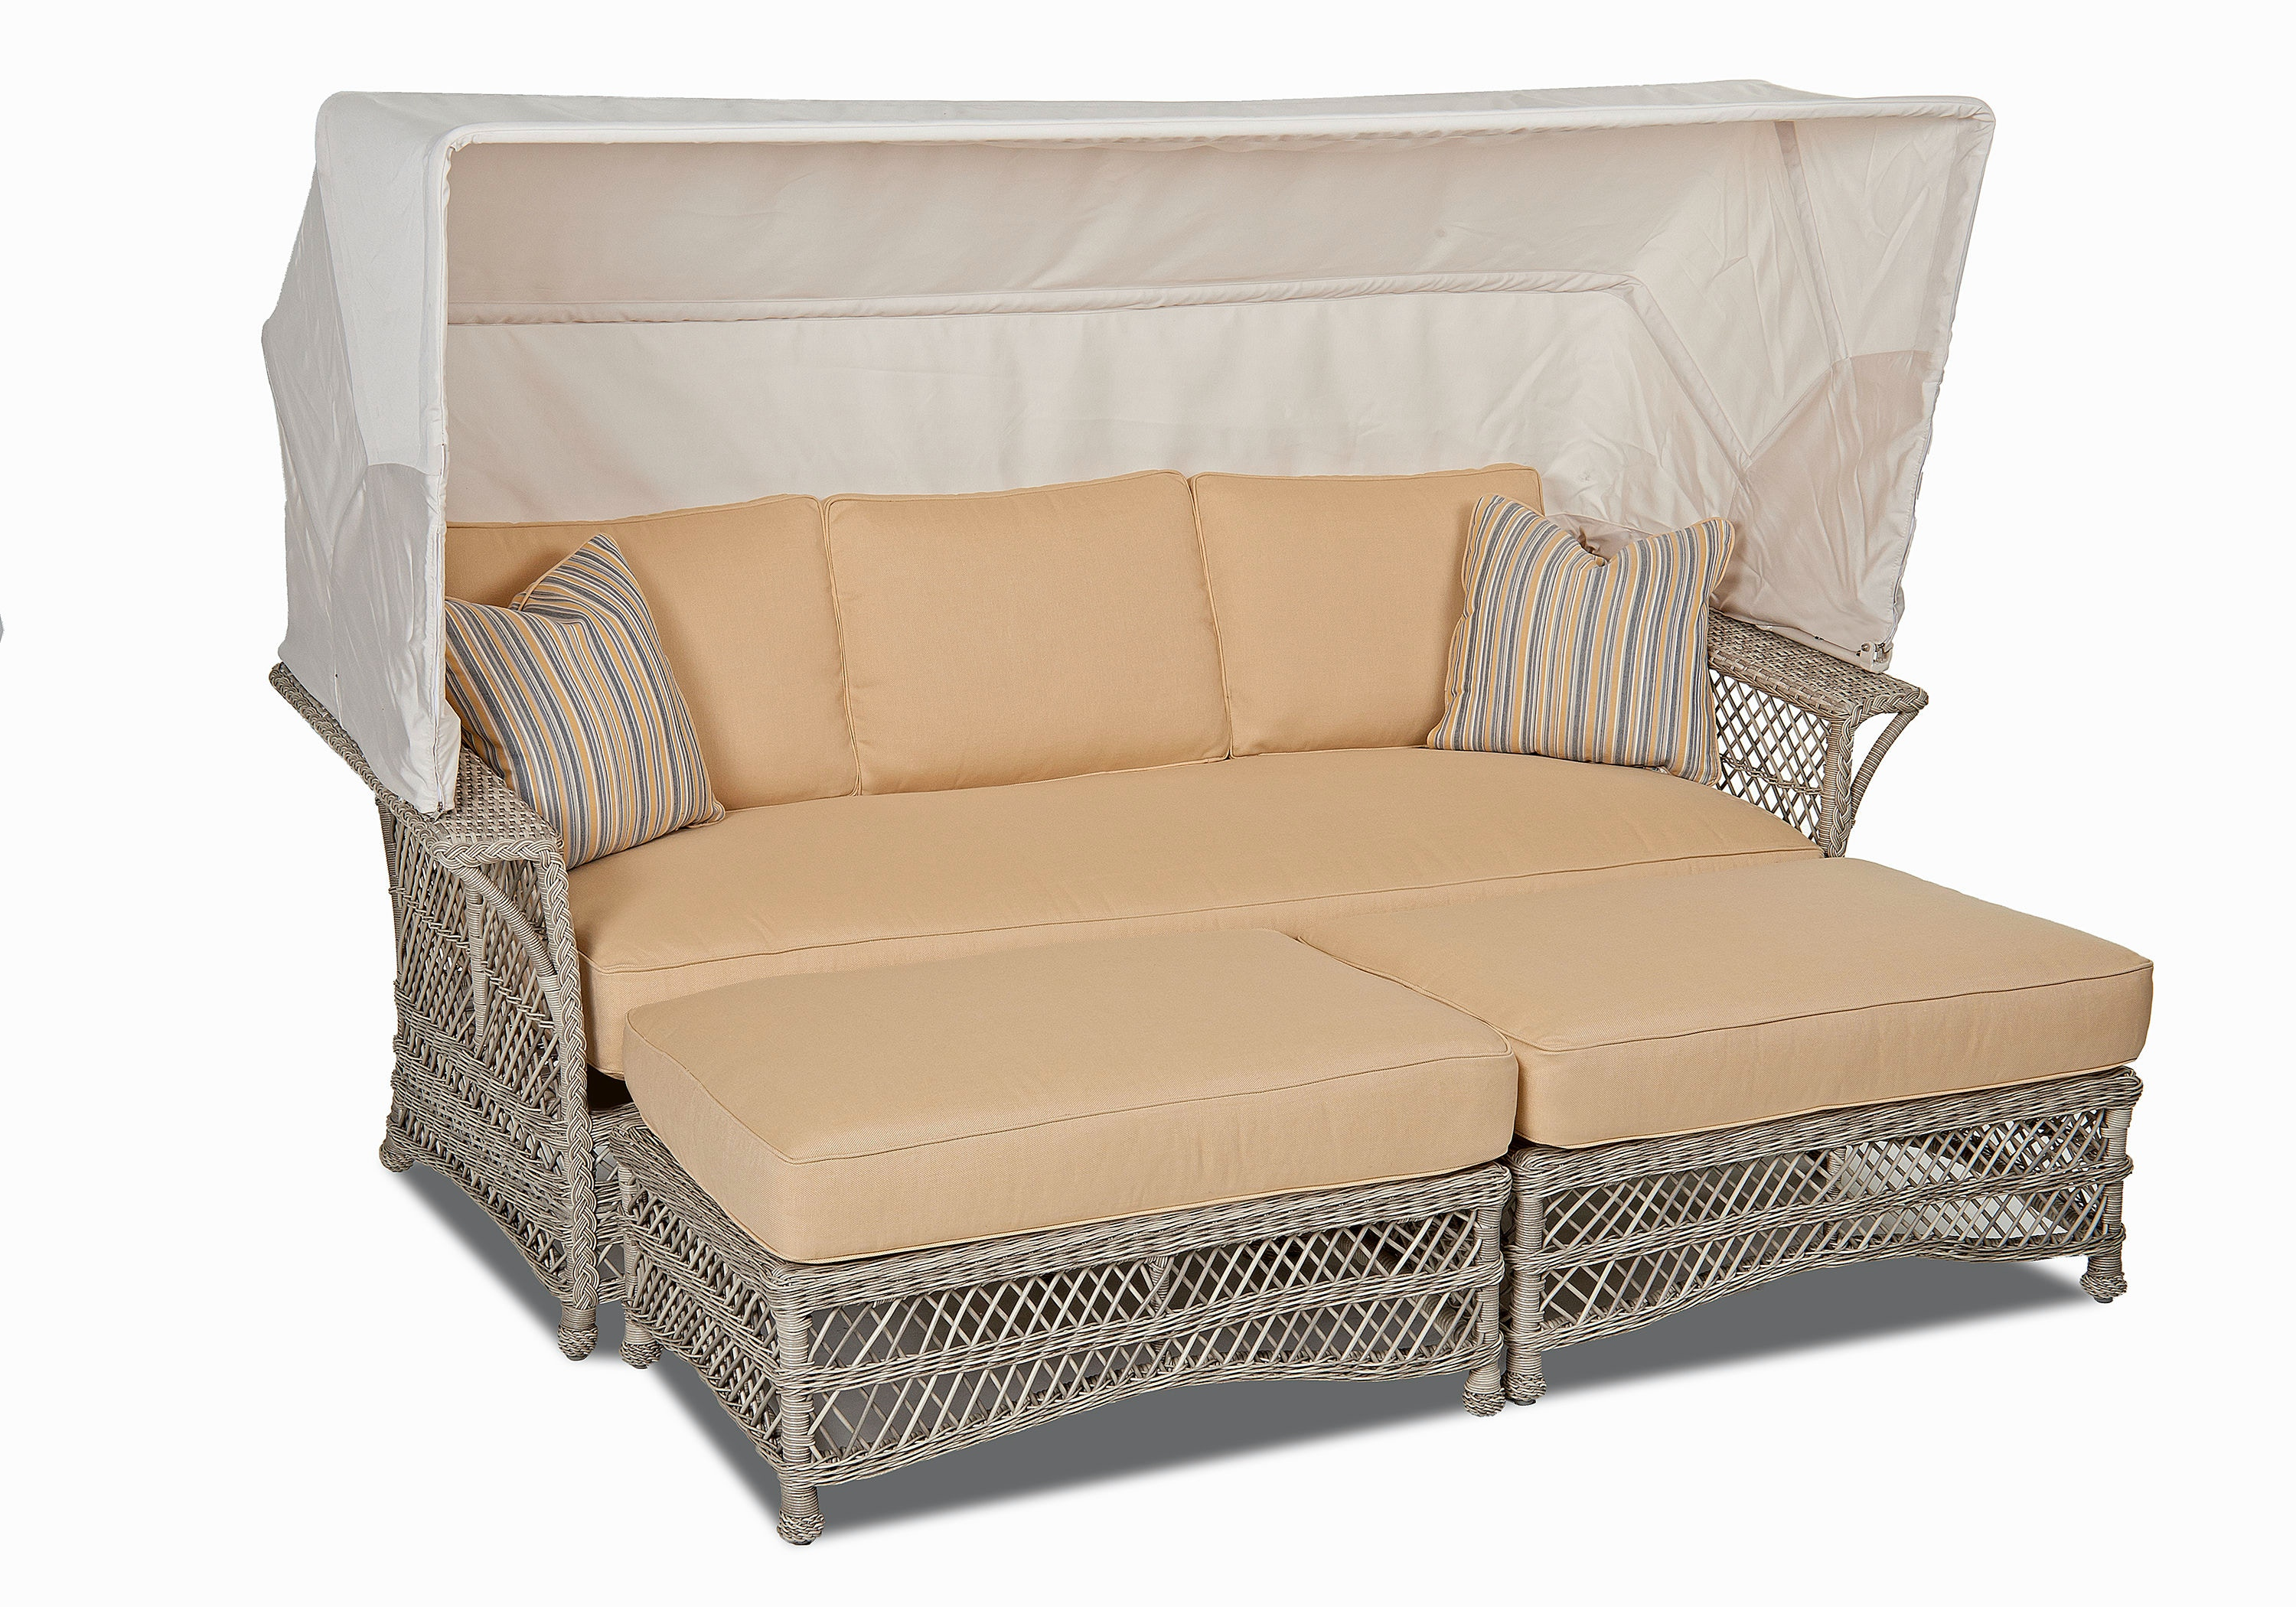 Klaussner Outdoor Outdoor Patio Willow Daybed W1200 DAY